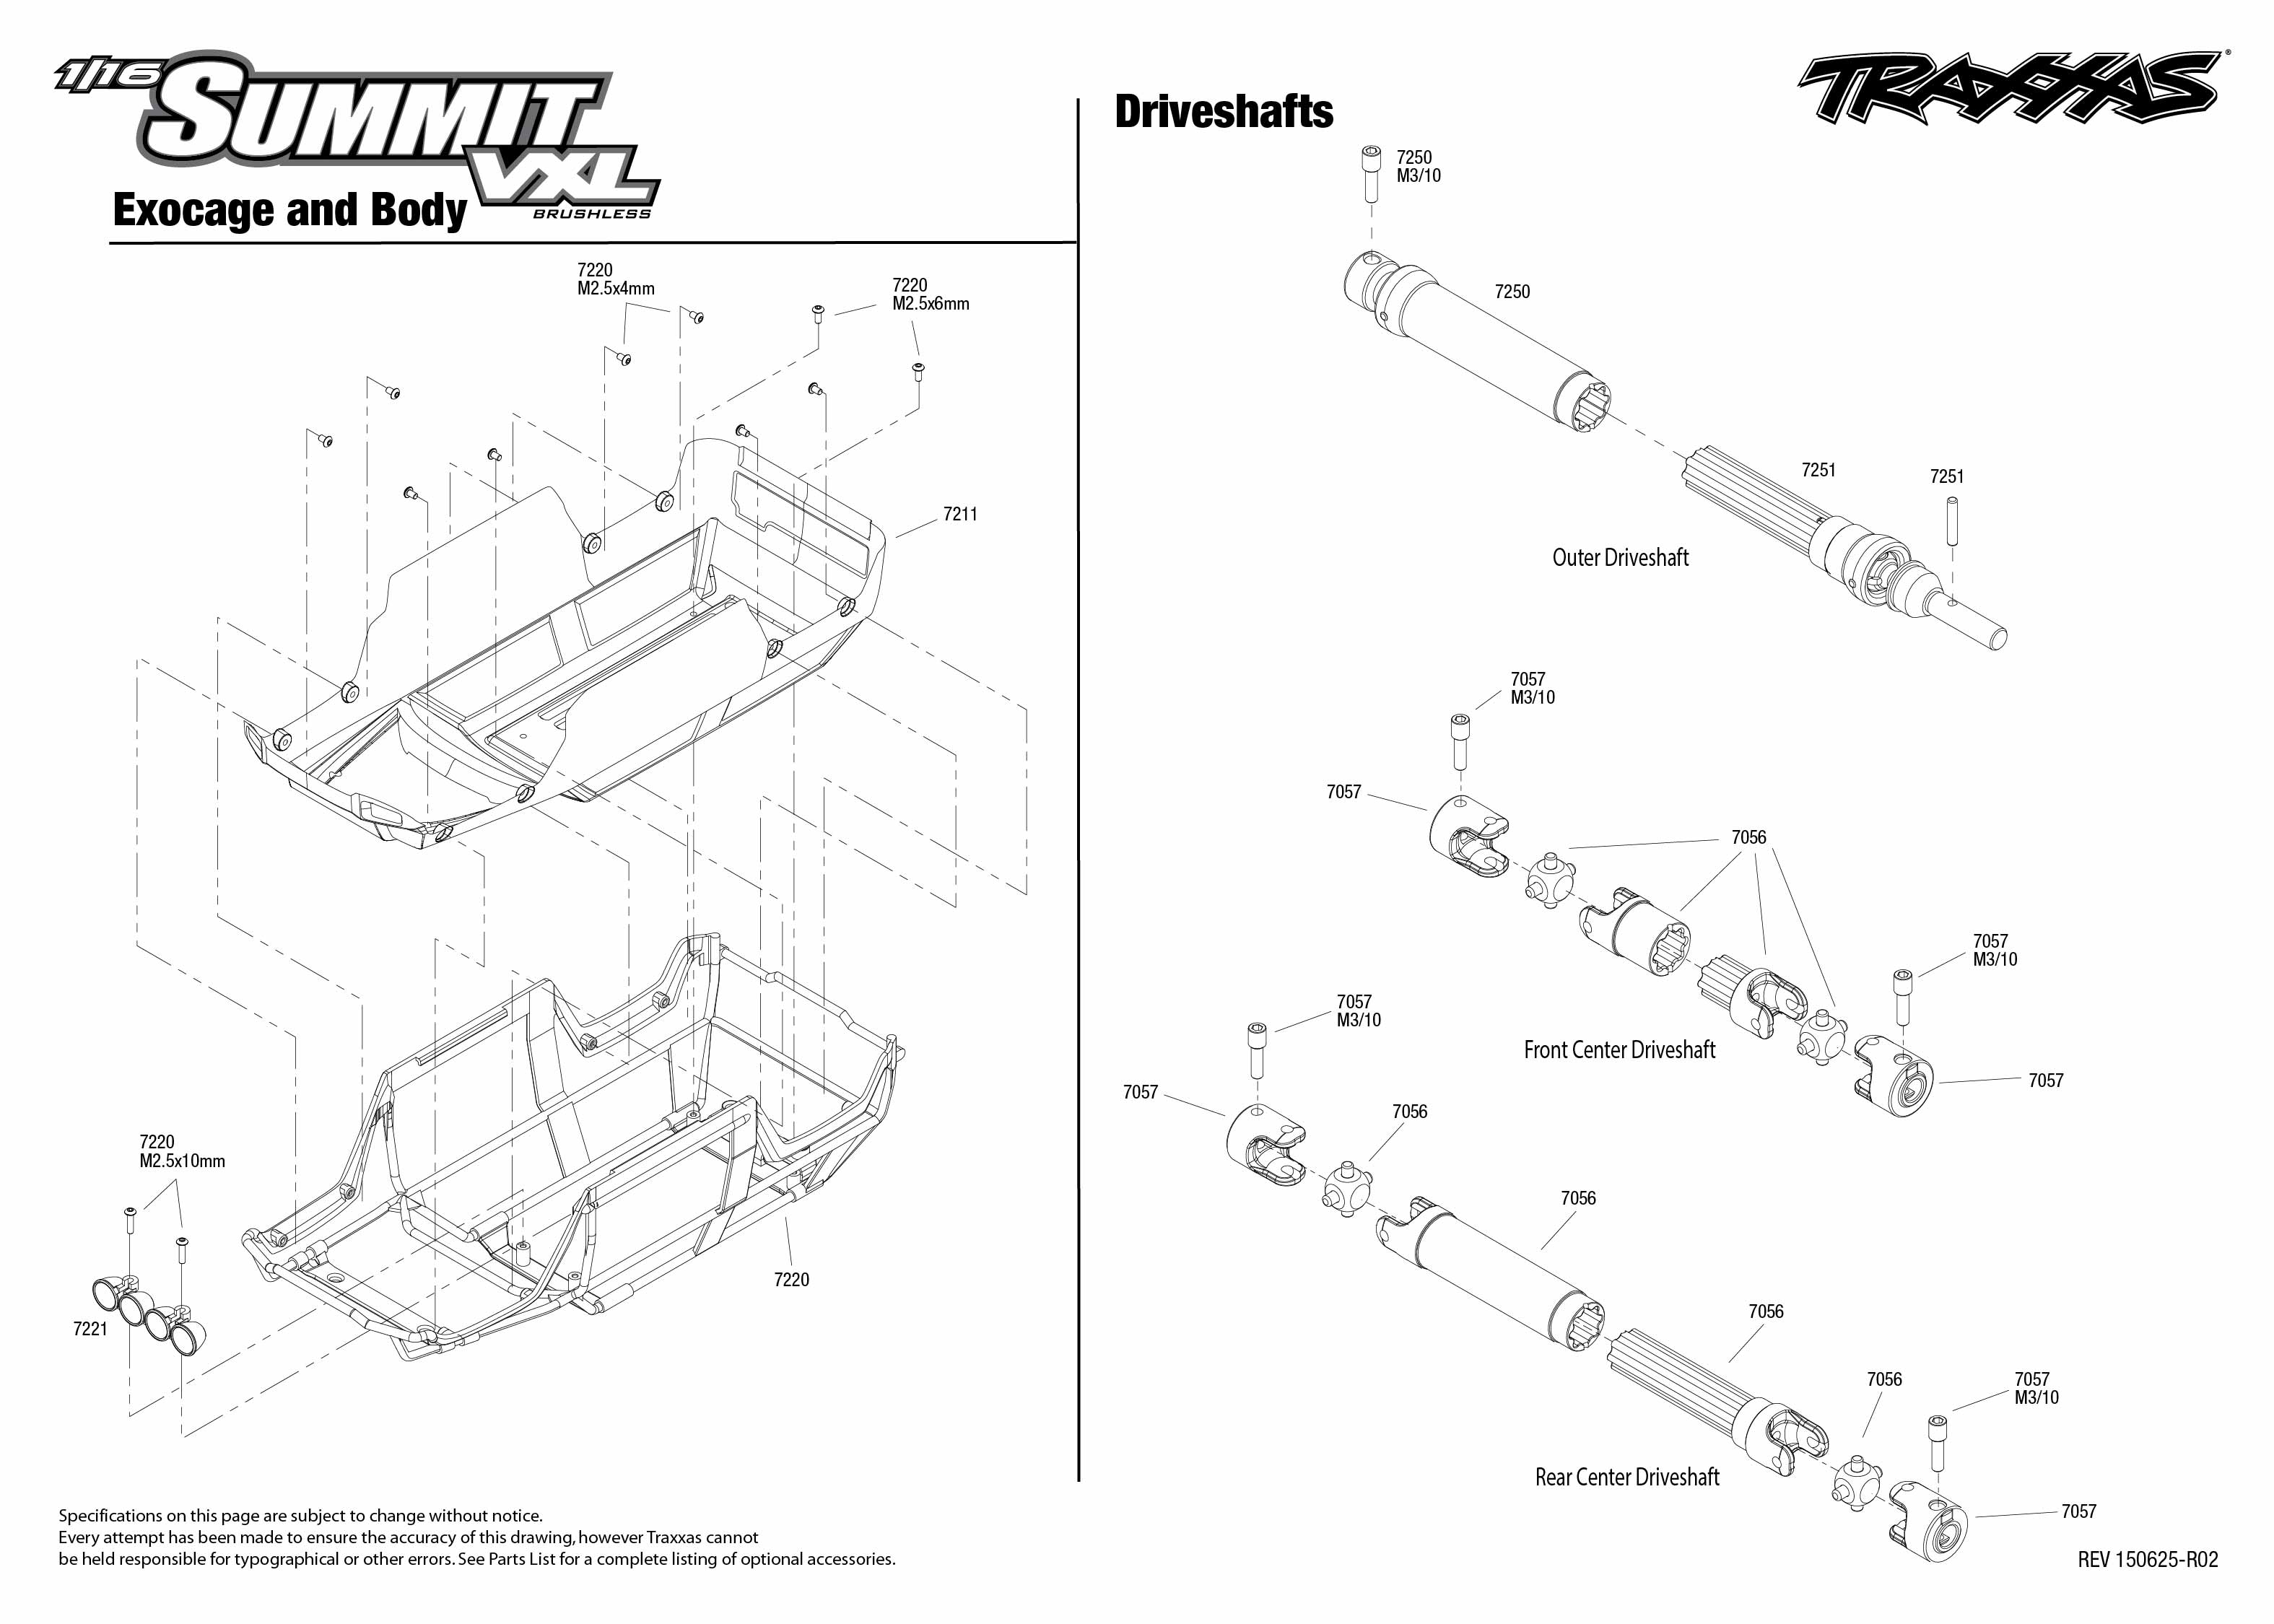 1/16 Summit VXL (72074-1) Driveshafts Assembly Exploded